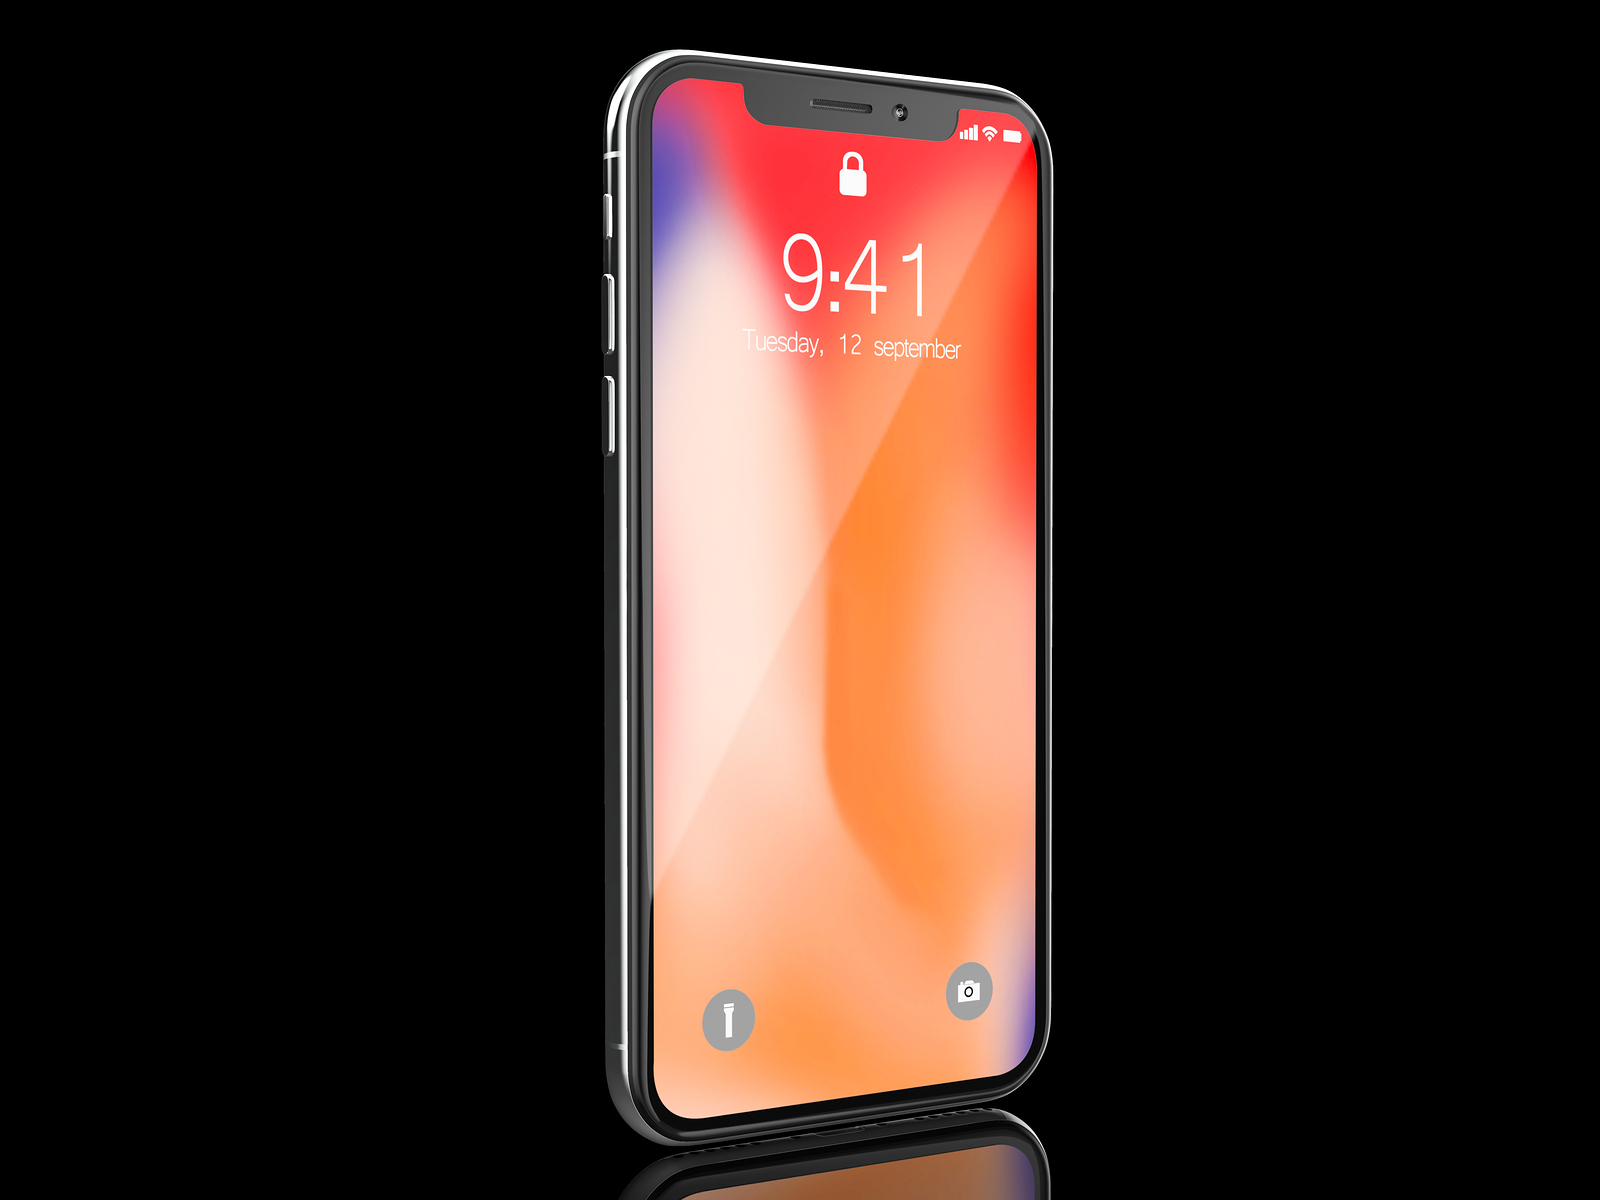 Apple's iPhone X LED Screen Made For Facial Recognition